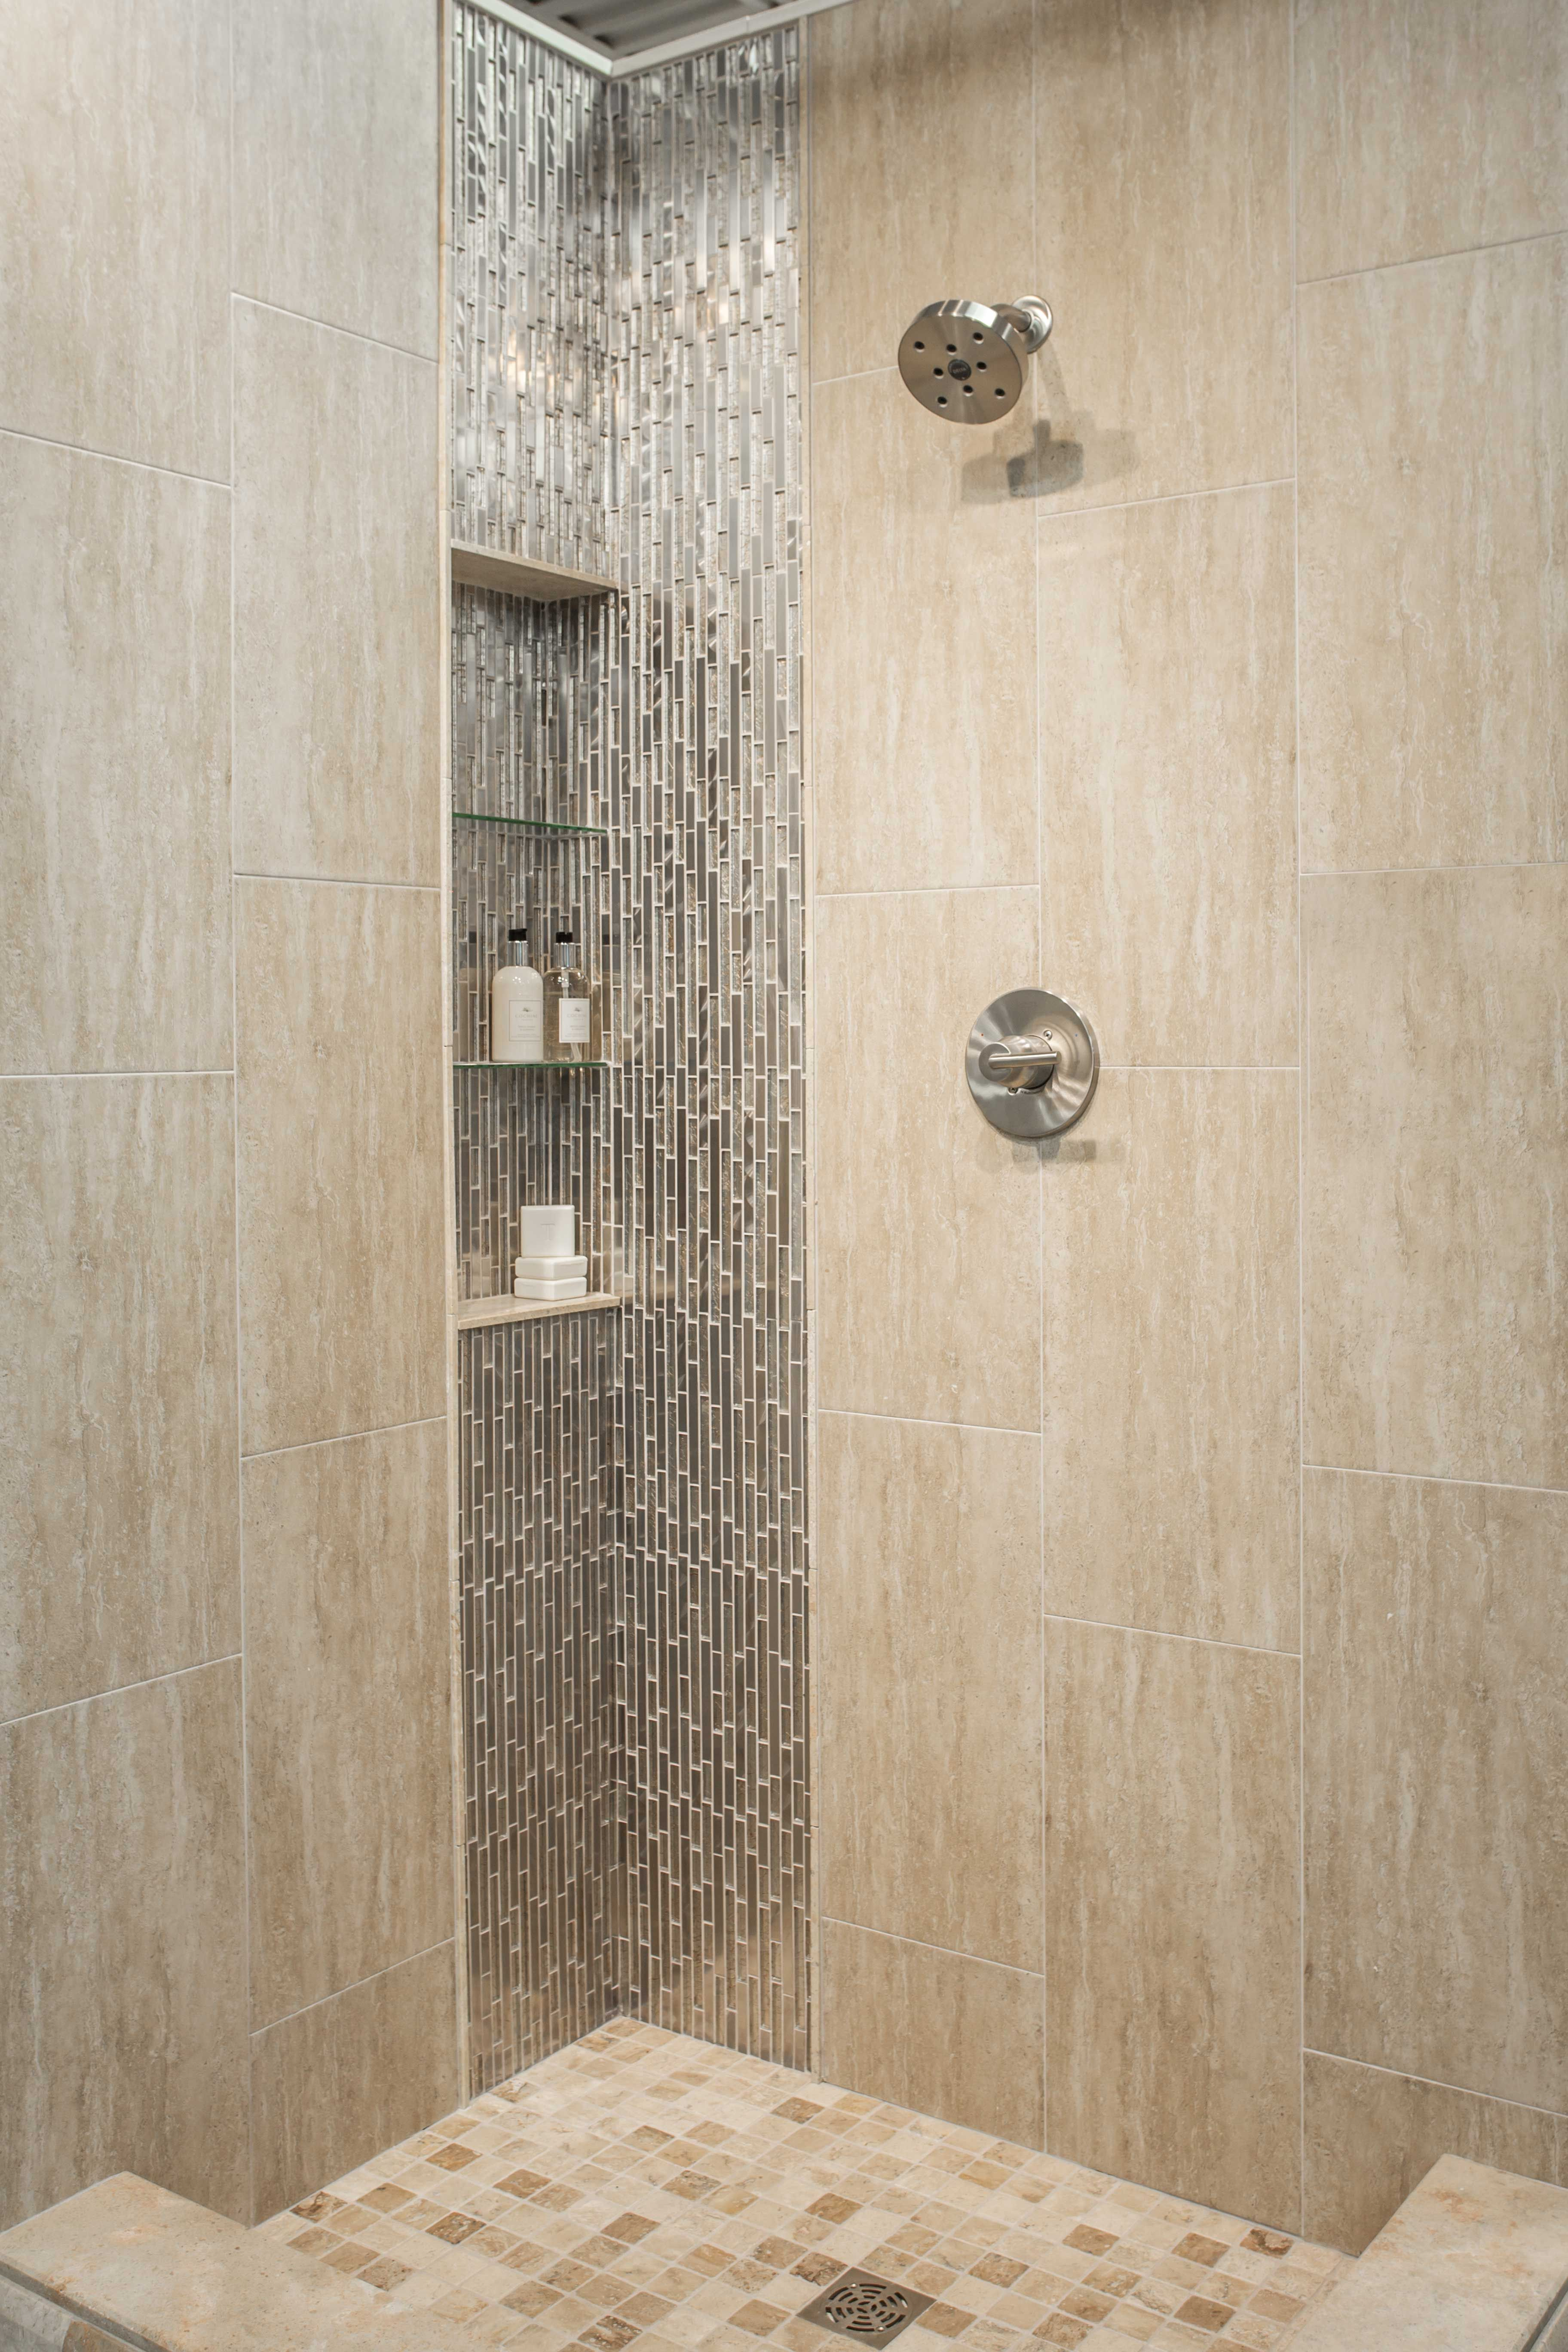 Porcelain Or Ceramic Tile For Shower Bathroom Shower Wall Tile - Classico Beige Porcelain Wall